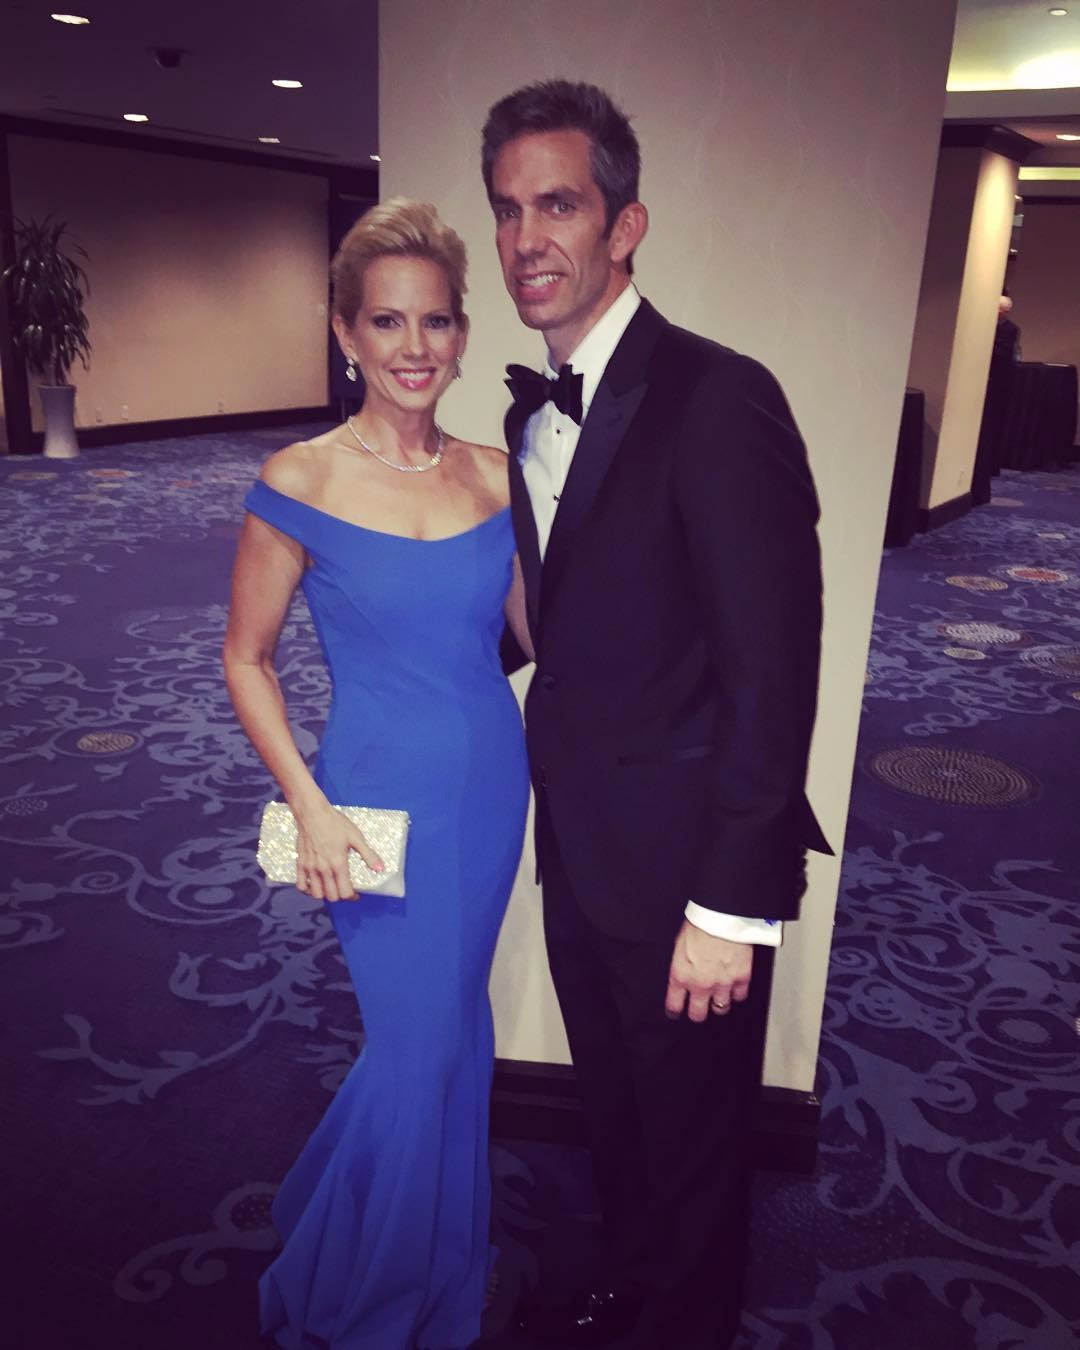 Shannon Bream and Sheldon Bream are dressed all classy, Shannon is looking gorgeous in her blue gown.